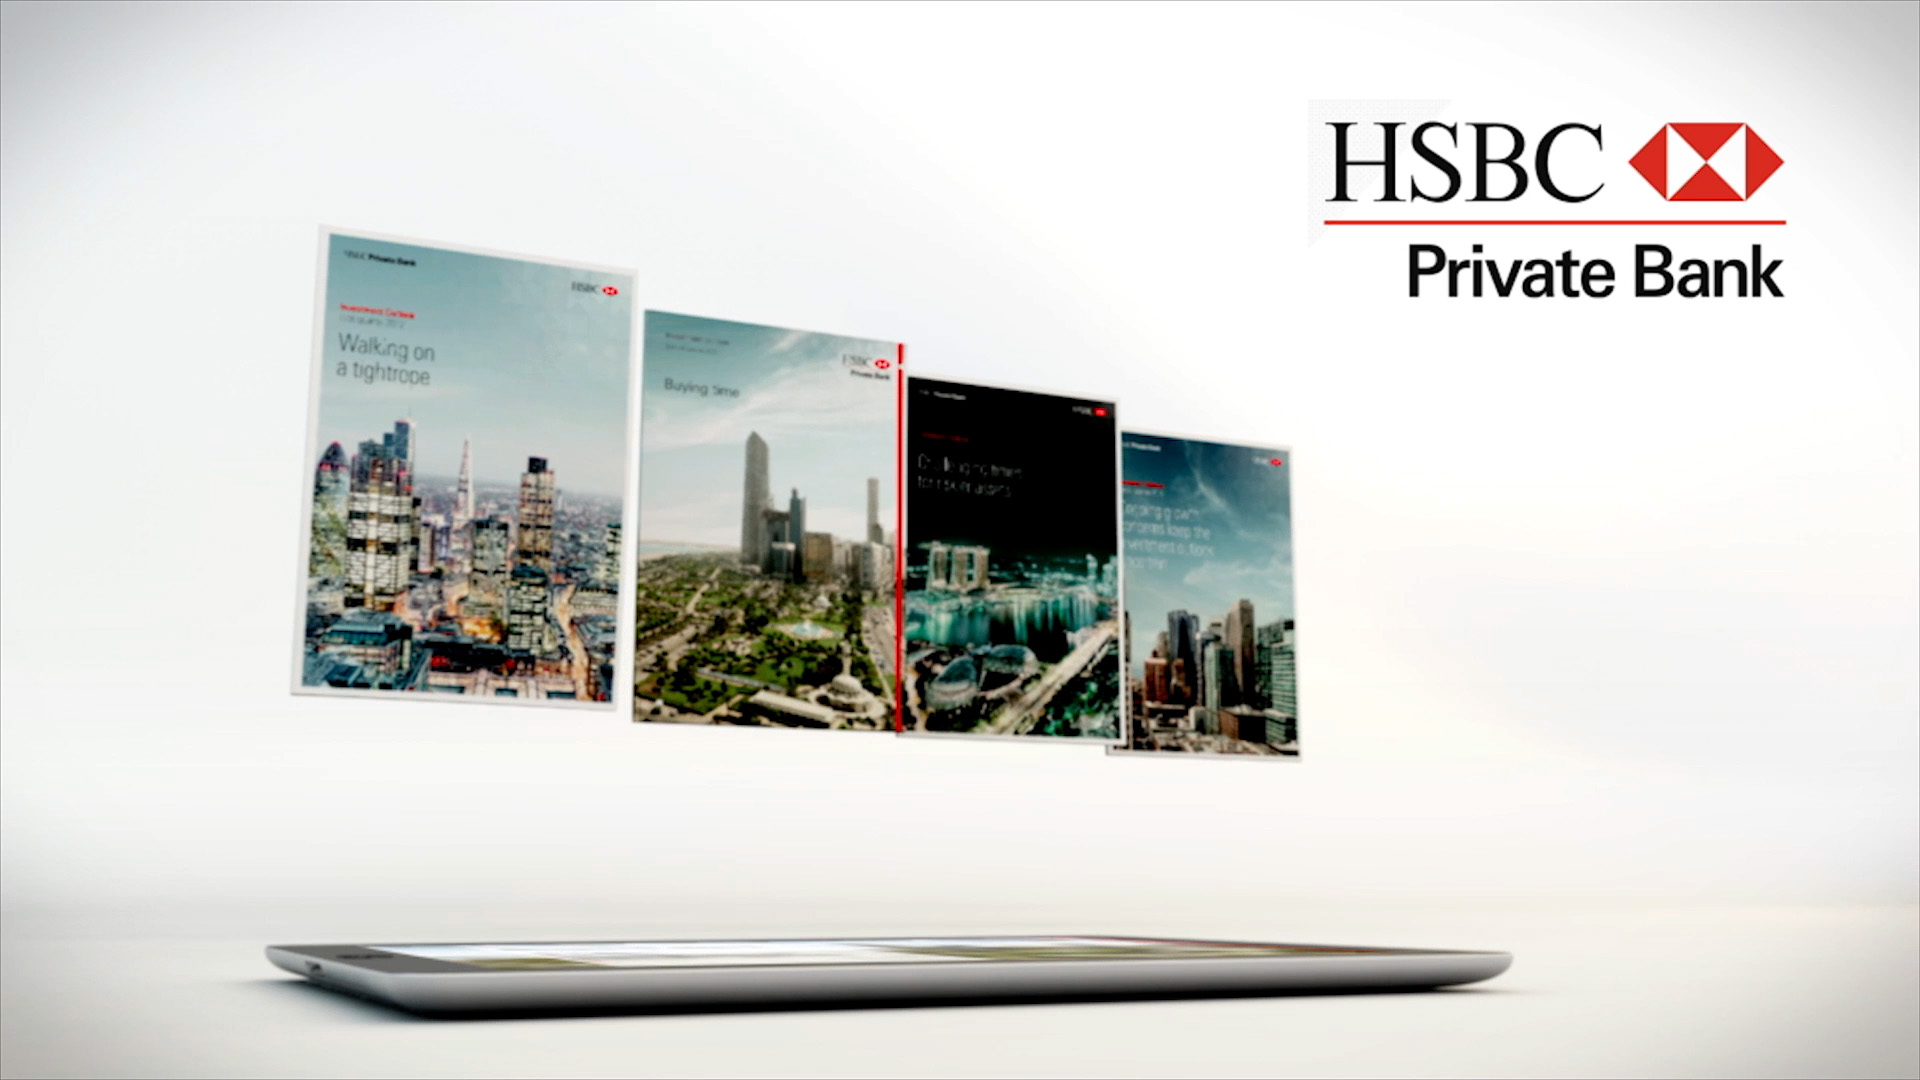 hsbc ipad animated video